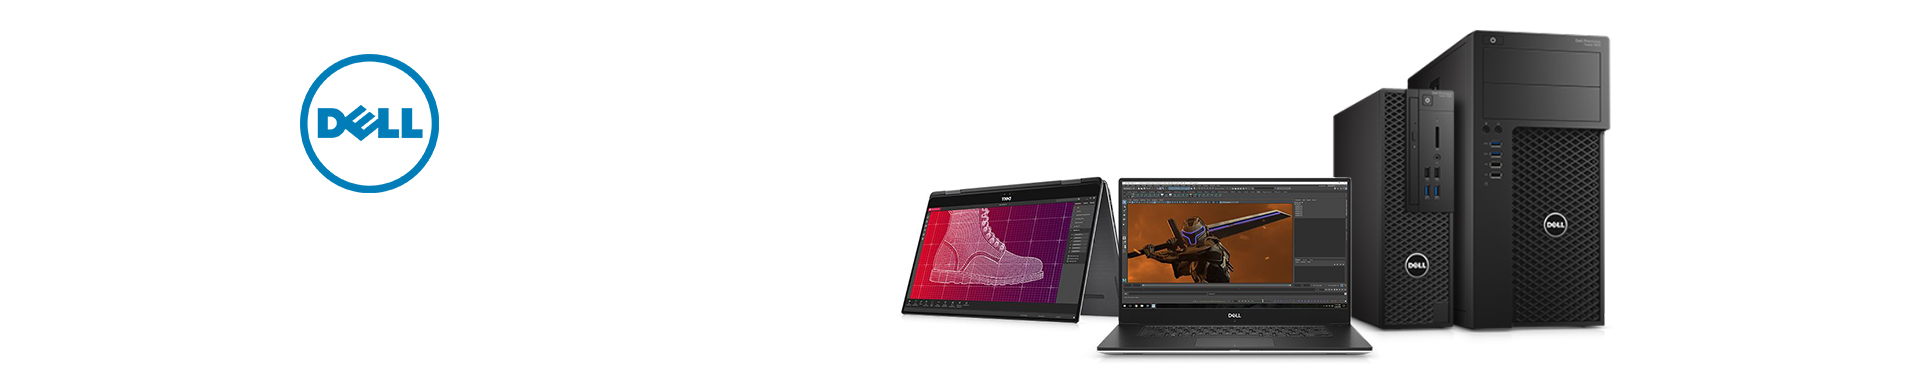 Korting op Dell Precision Workstations